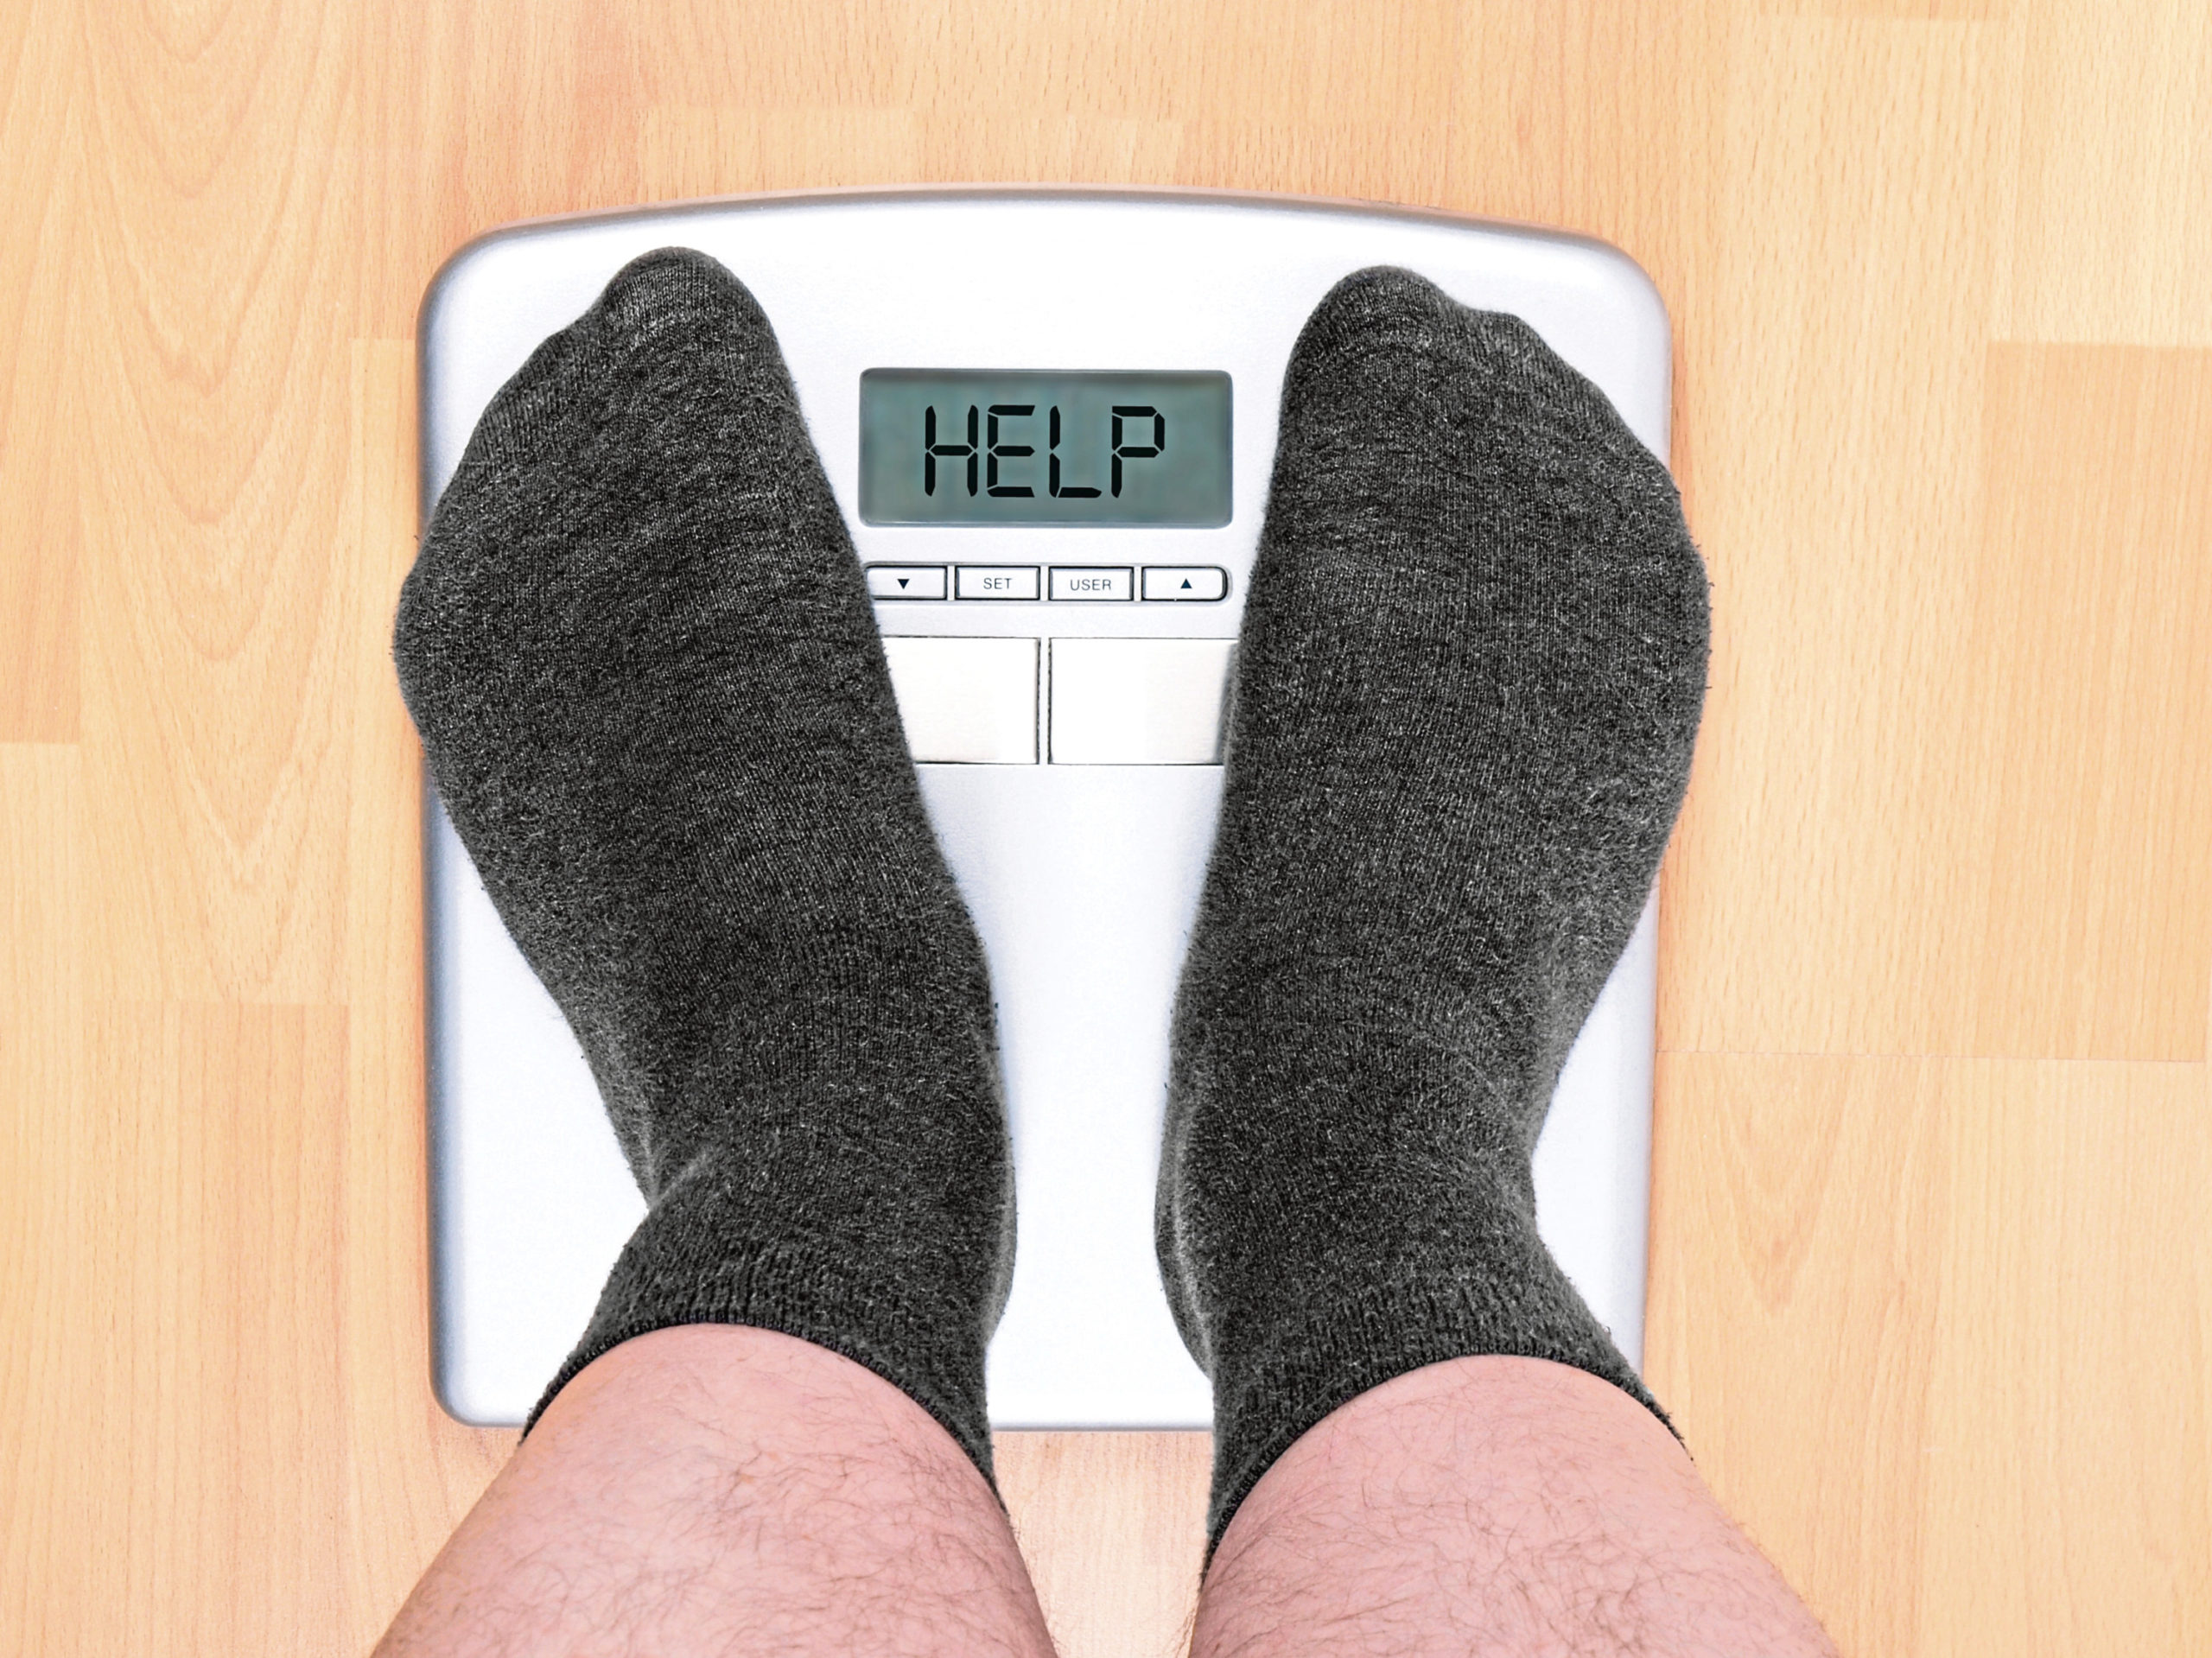 overweight man on personal scales; Shutterstock ID 206253880; Purchase Order: -